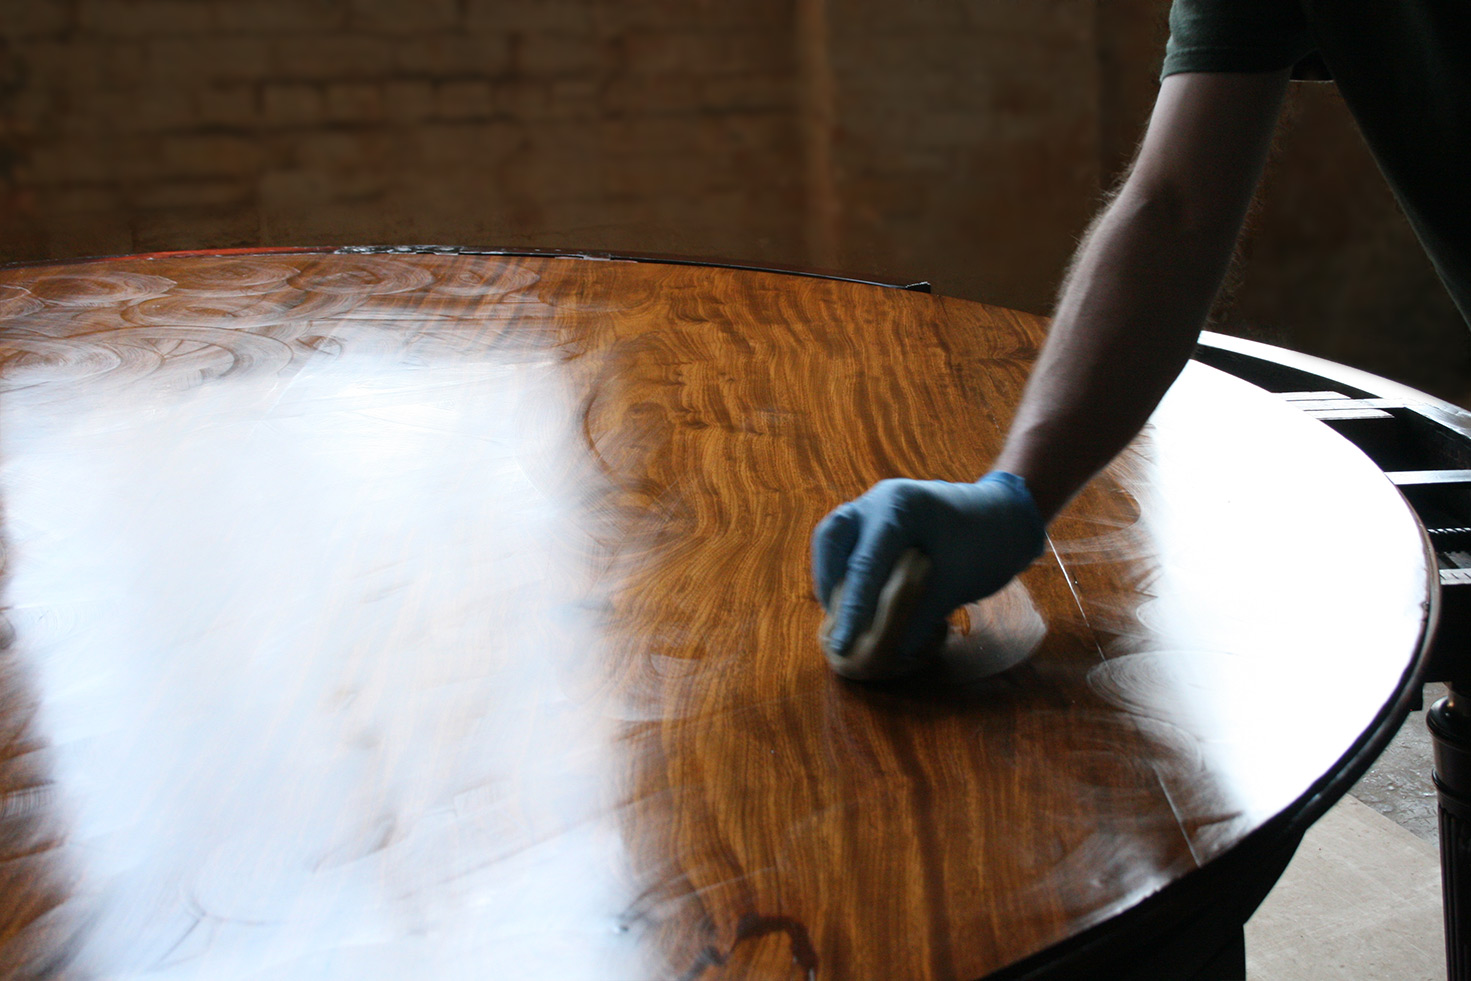 Shellac sets very rapidly. In the above photograph, there are visible circular strokes made during applying shellac with a  French polishing  pad.